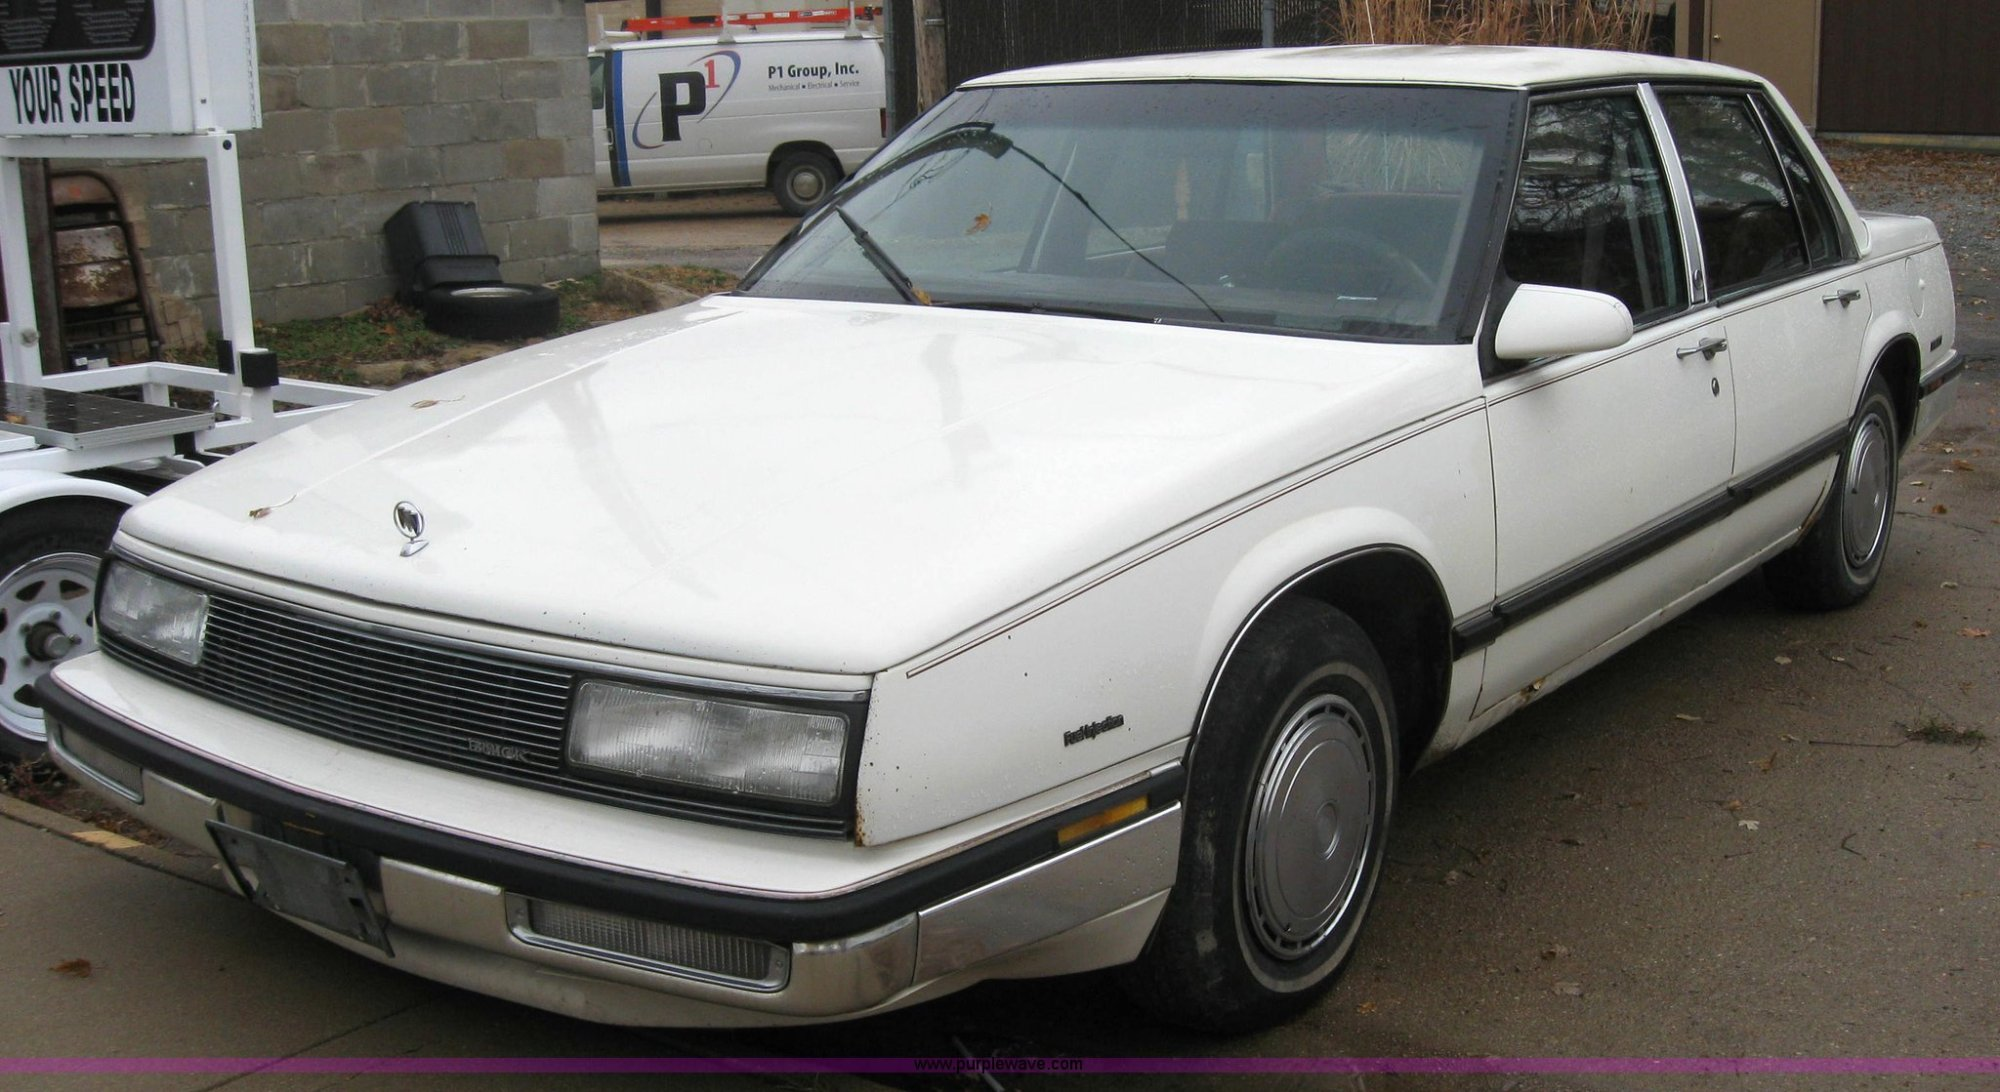 hight resolution of 5233 image for item 5233 1988 buick lesabre limited